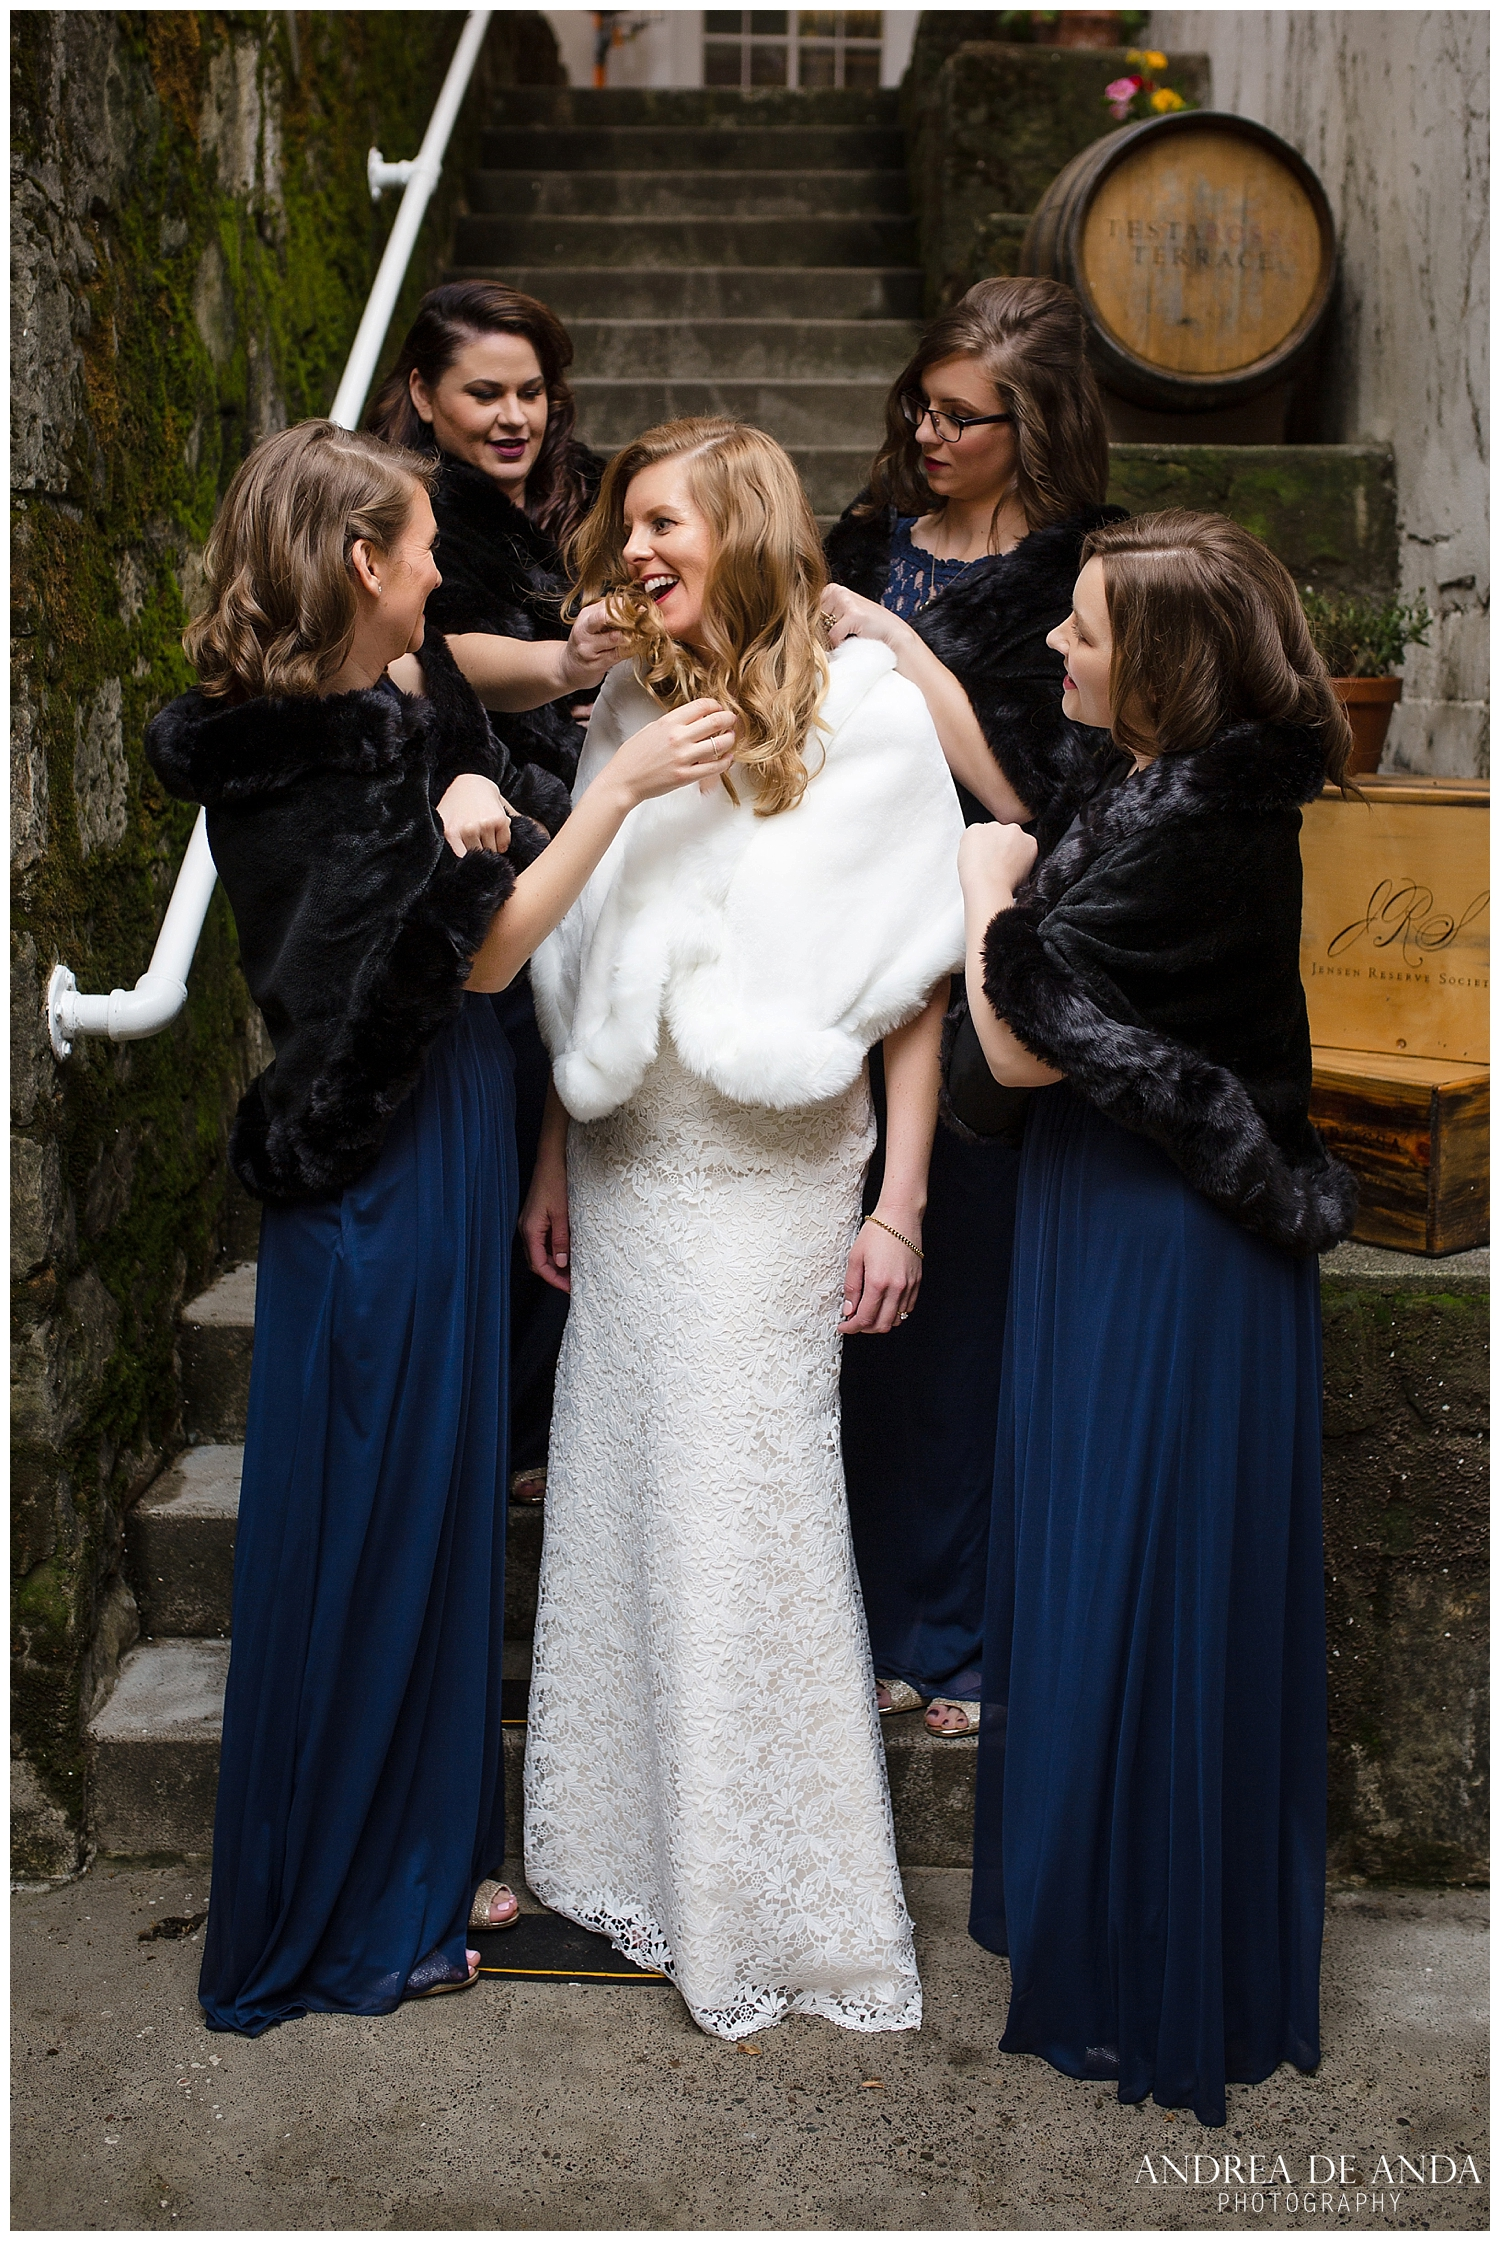 Testarossa Winery Winter Wedding by Andrea de Anda Photography_-11.jpg